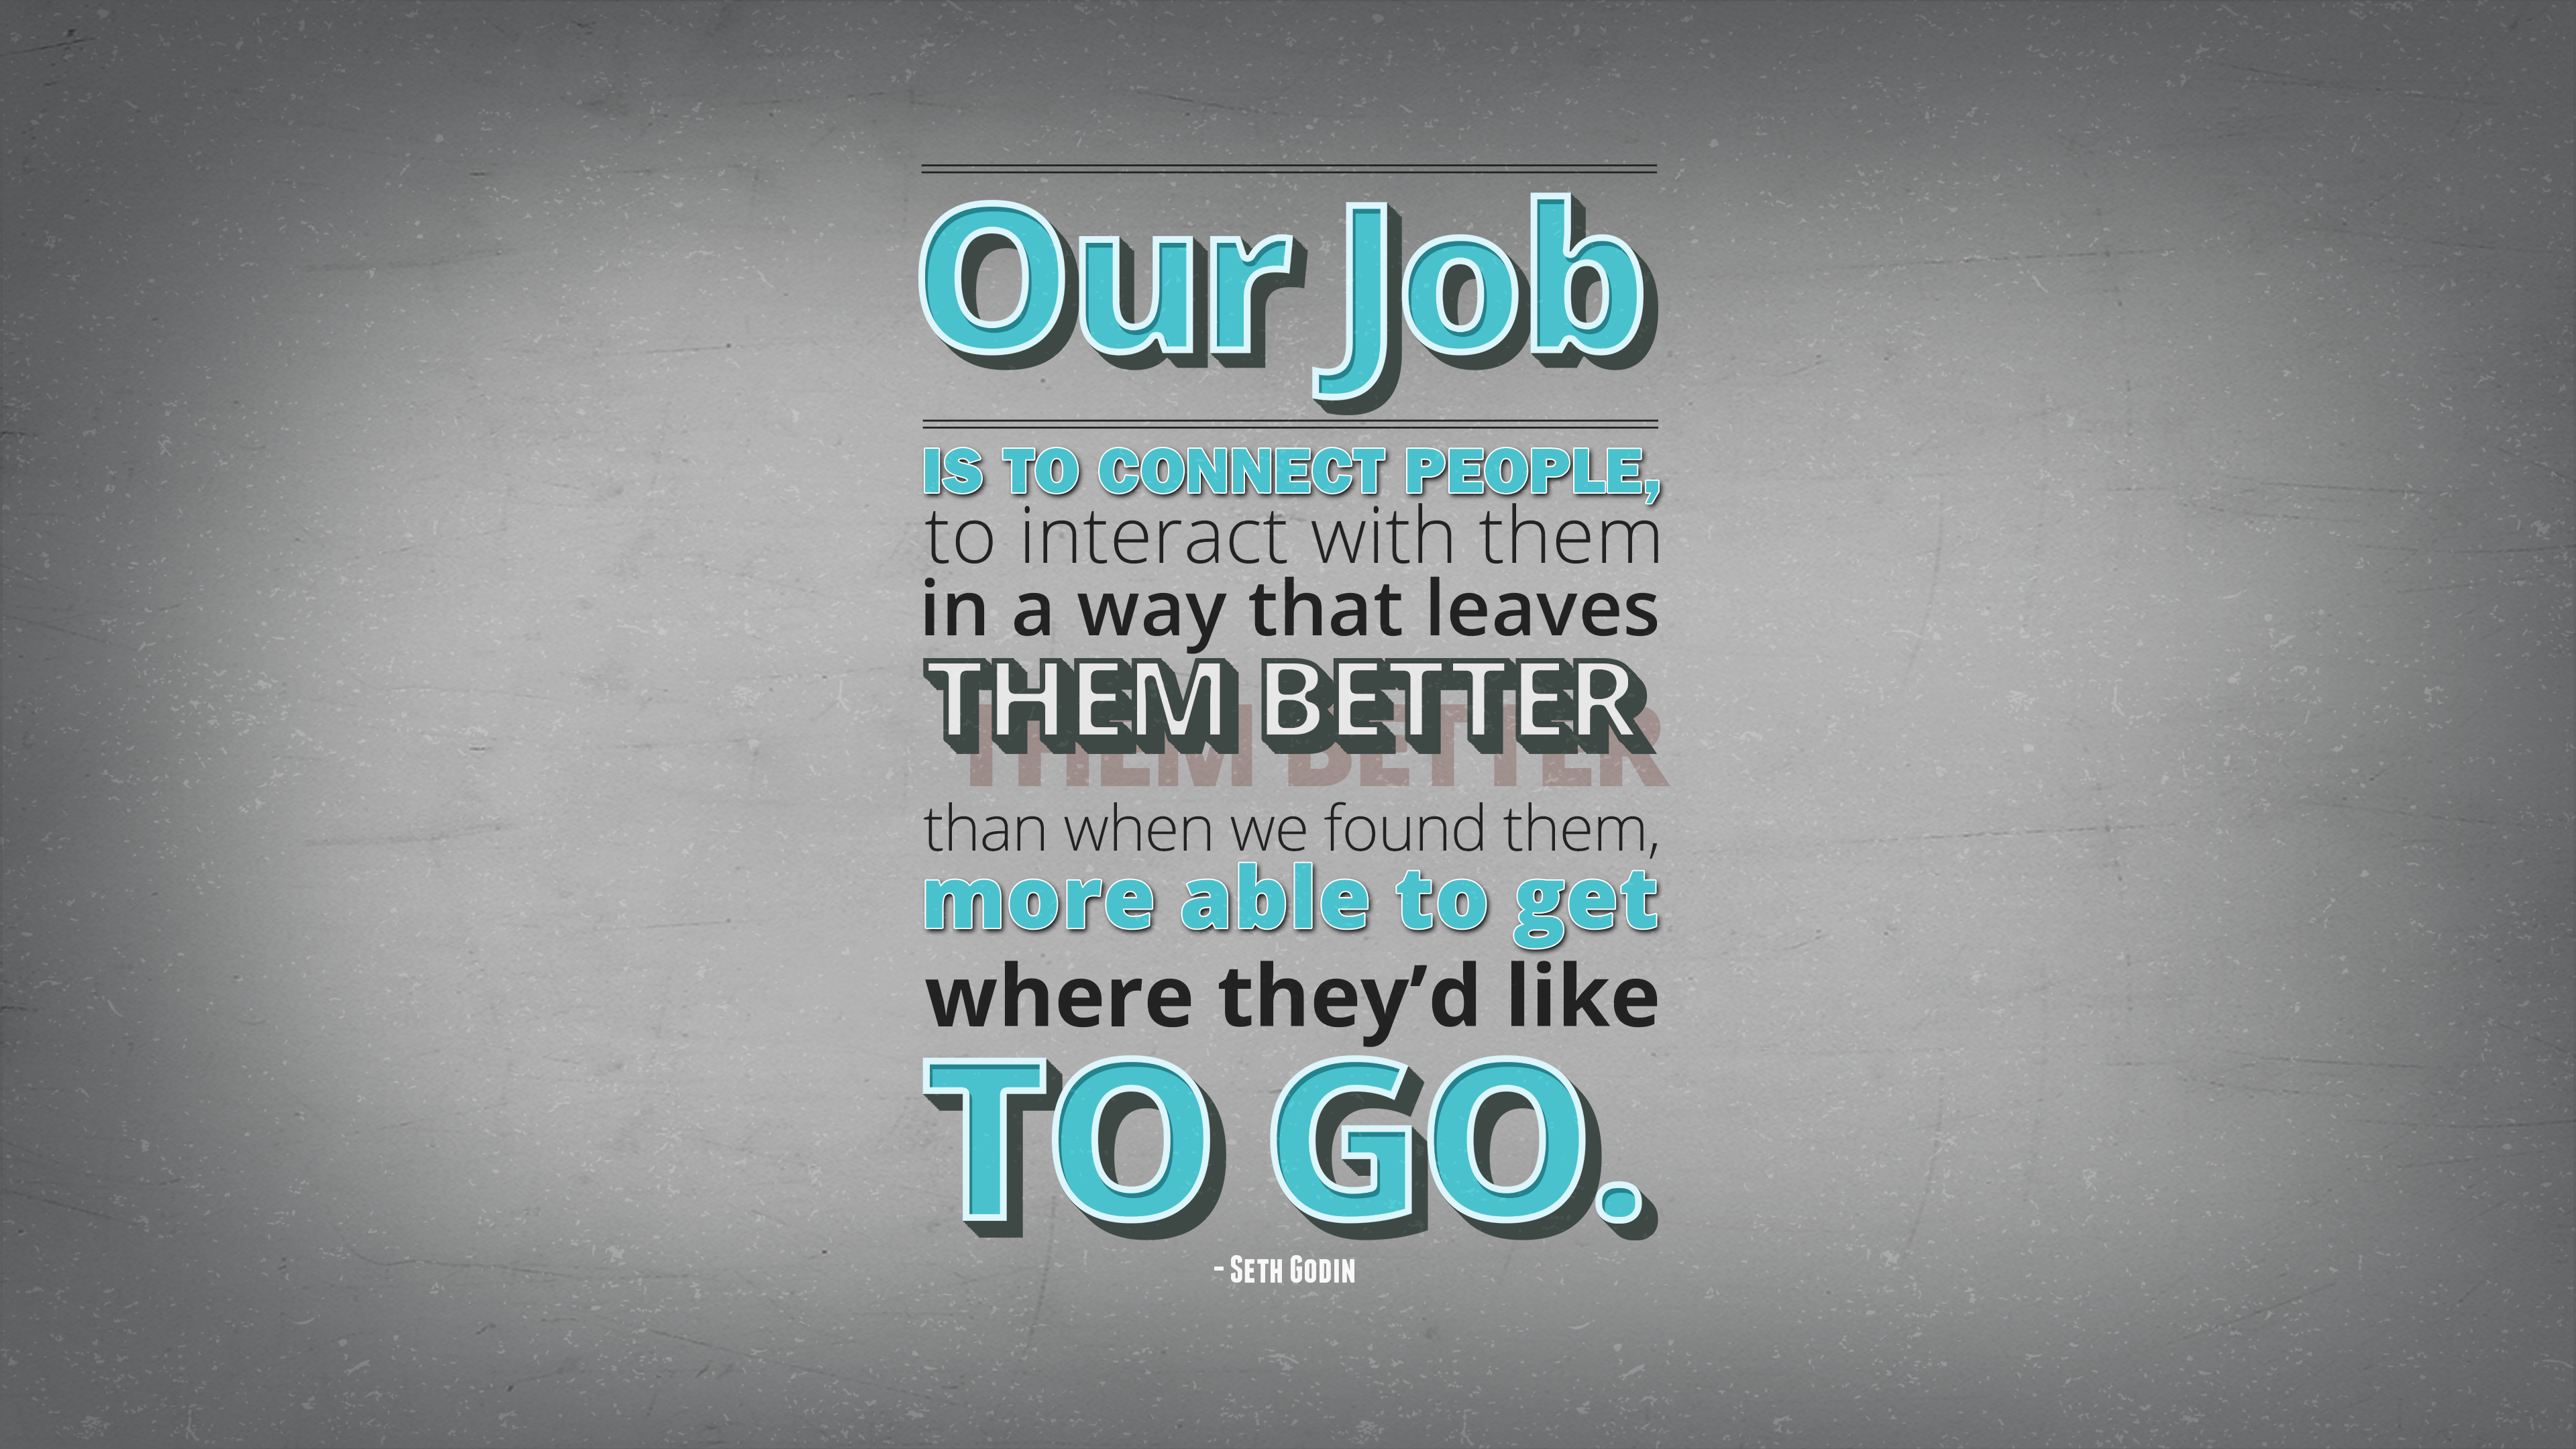 Our job is to connect people, to interact with them in a way that leaves them better than when we found them, more able to get where they'd like to go. Seth Godin